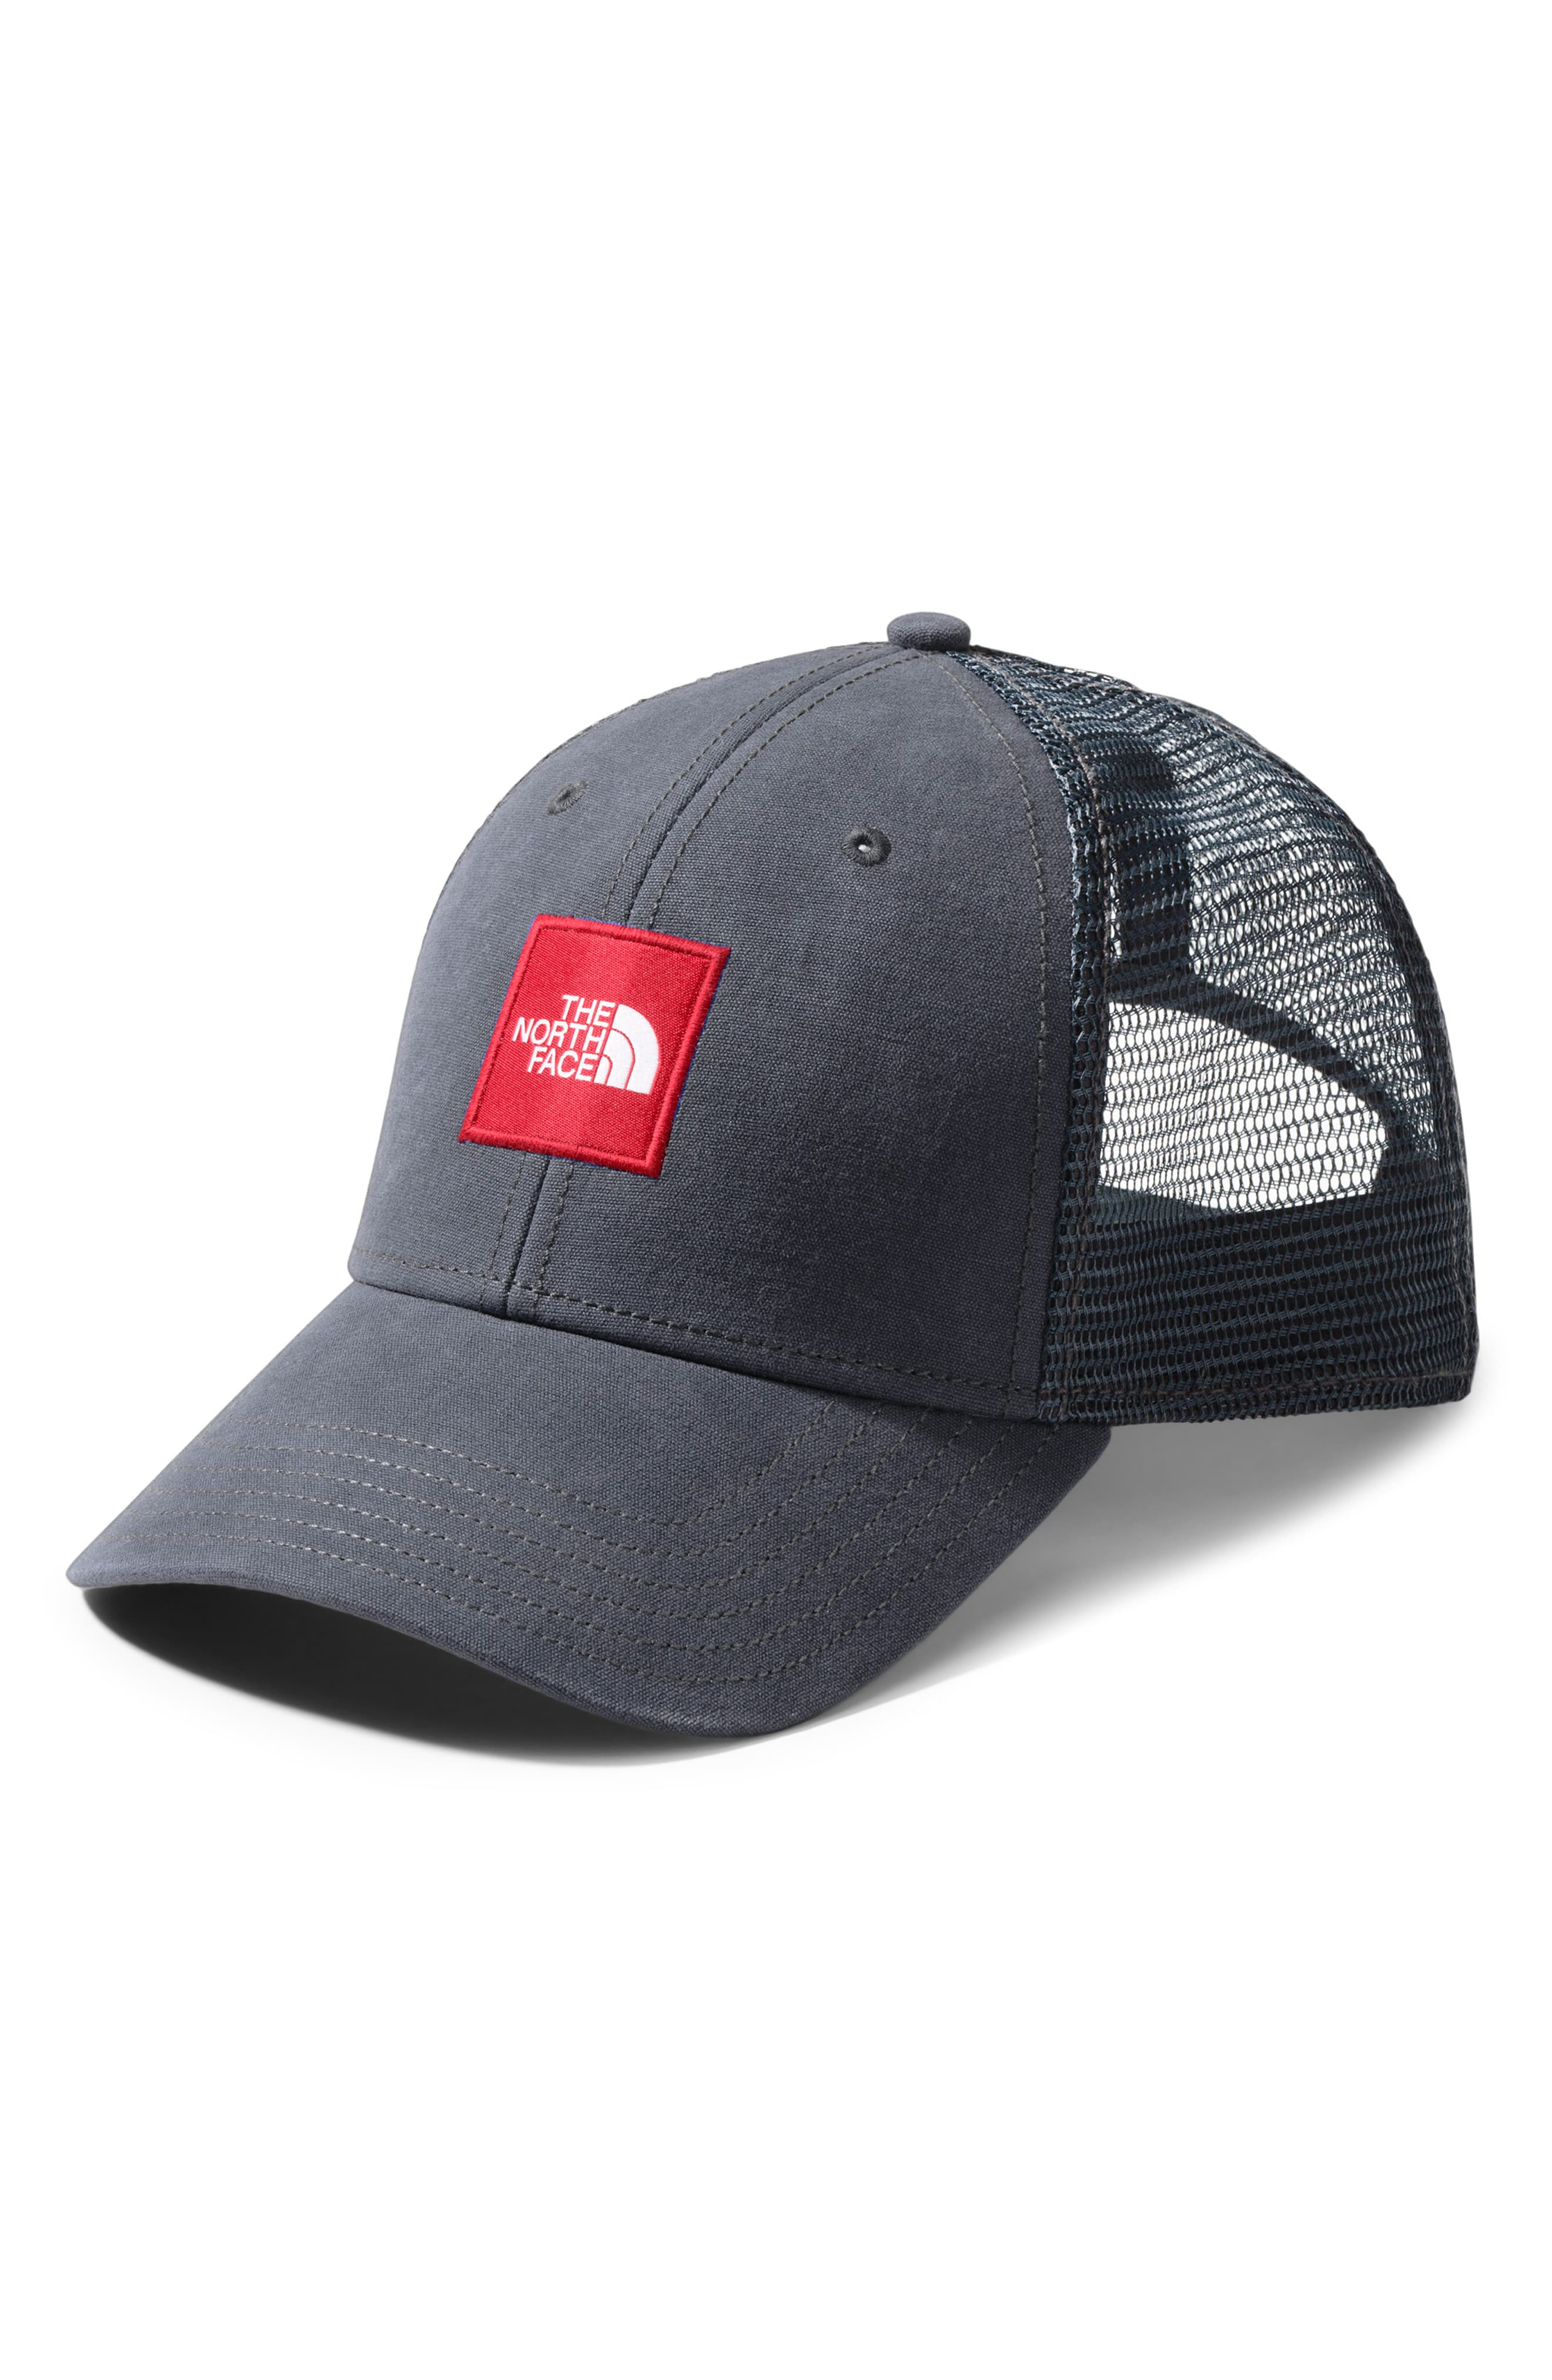 717d48e86 Men's The North Face Box Logo Trucker Hat - Grey | Products in 2019 ...